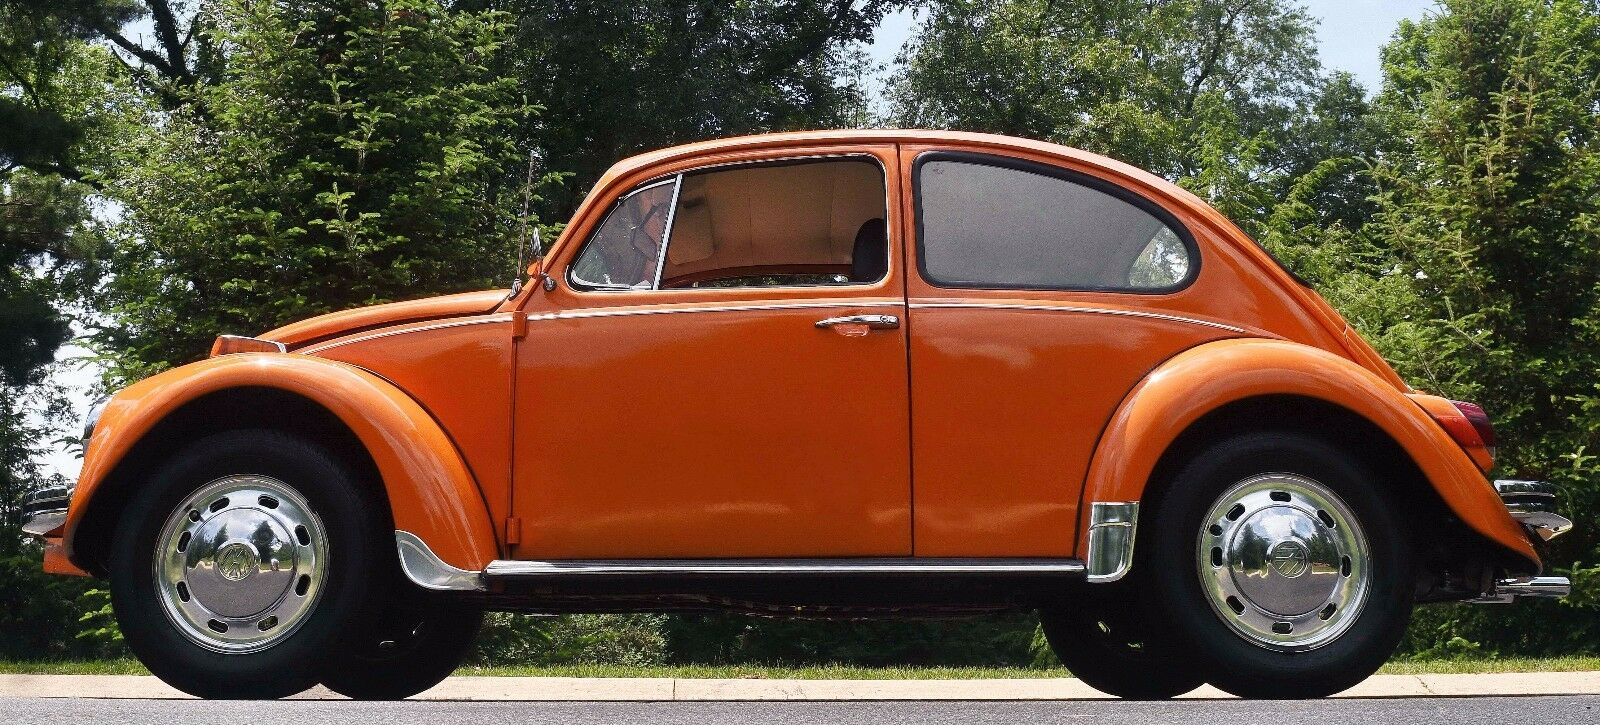 1970 Volkswagen Beetle - Classic  1970 70 Volkswagen VW Classic Beetle Orange Manual Low Milage